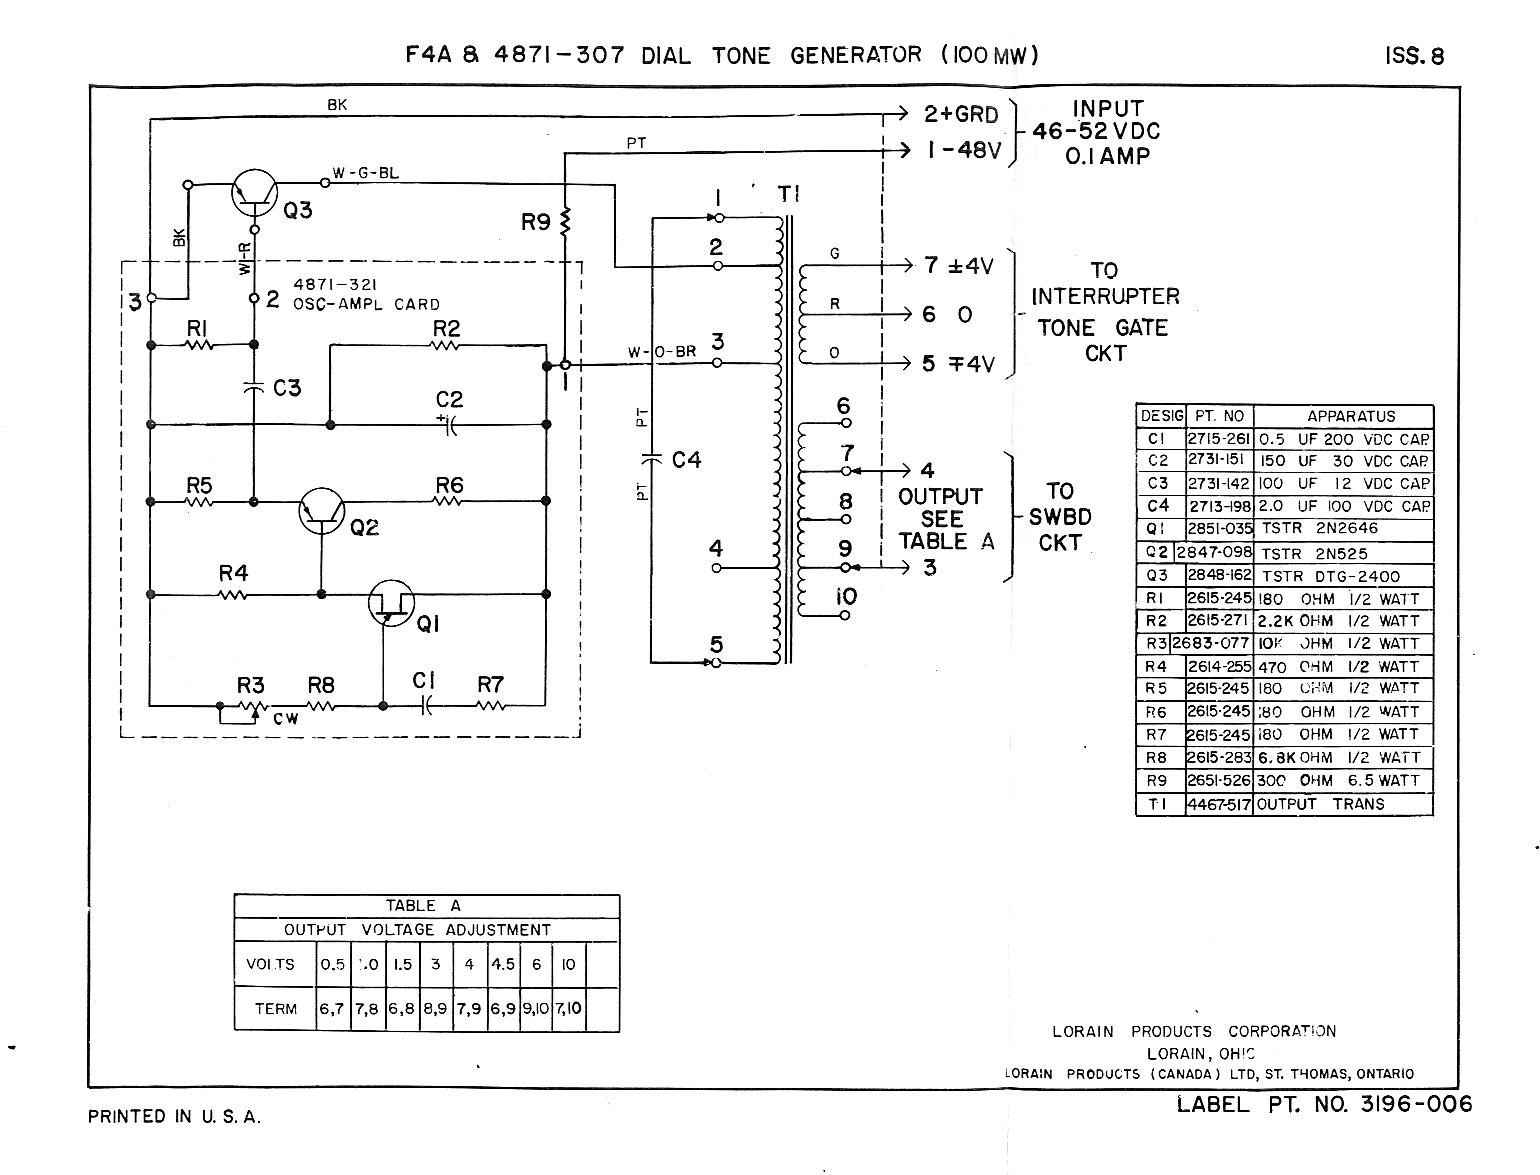 lorain_f4a telephone technical references Residential Telephone Wiring Diagram at pacquiaovsvargaslive.co